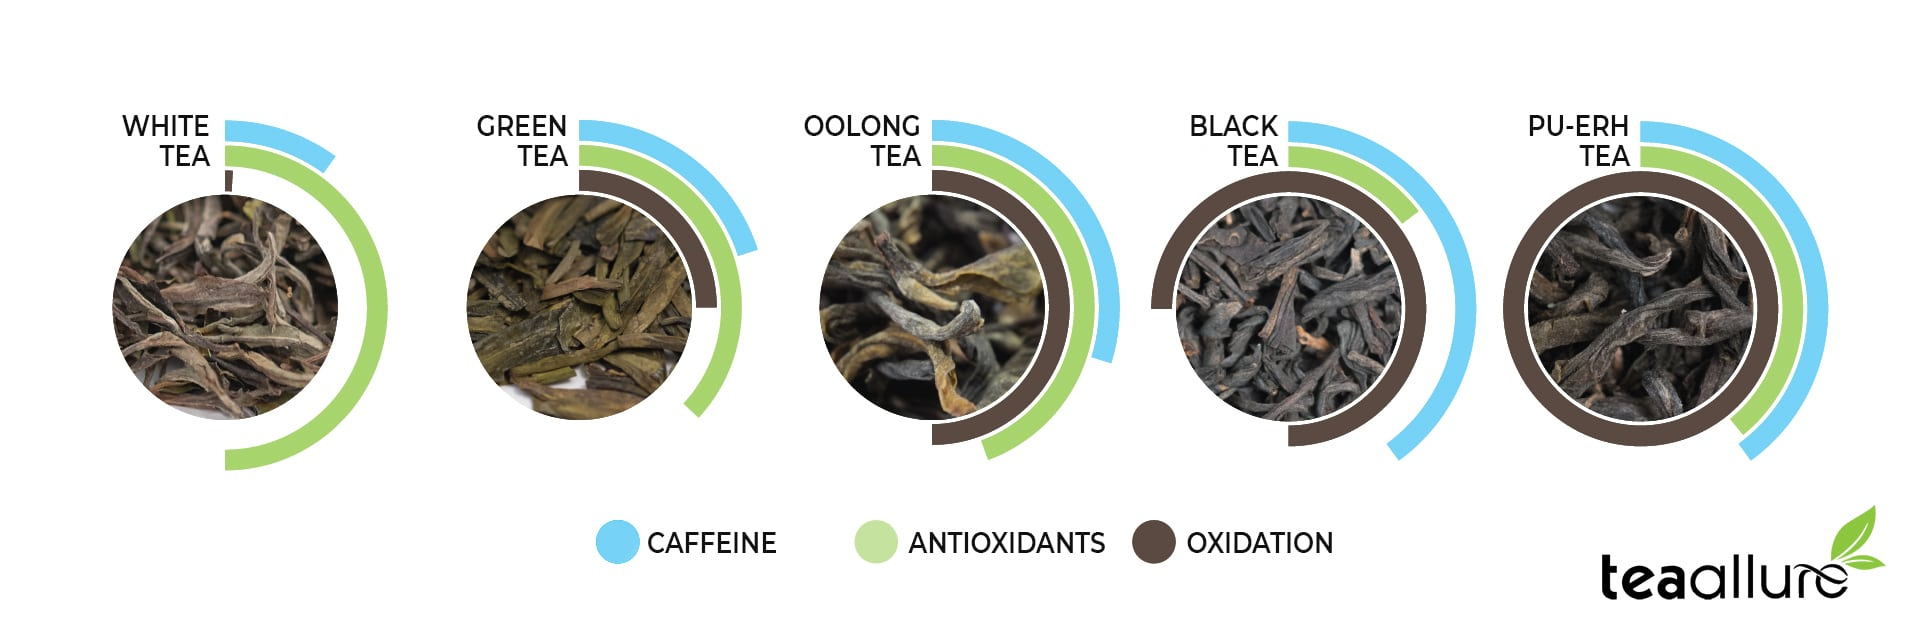 Oxidation and caffeine difference between teas